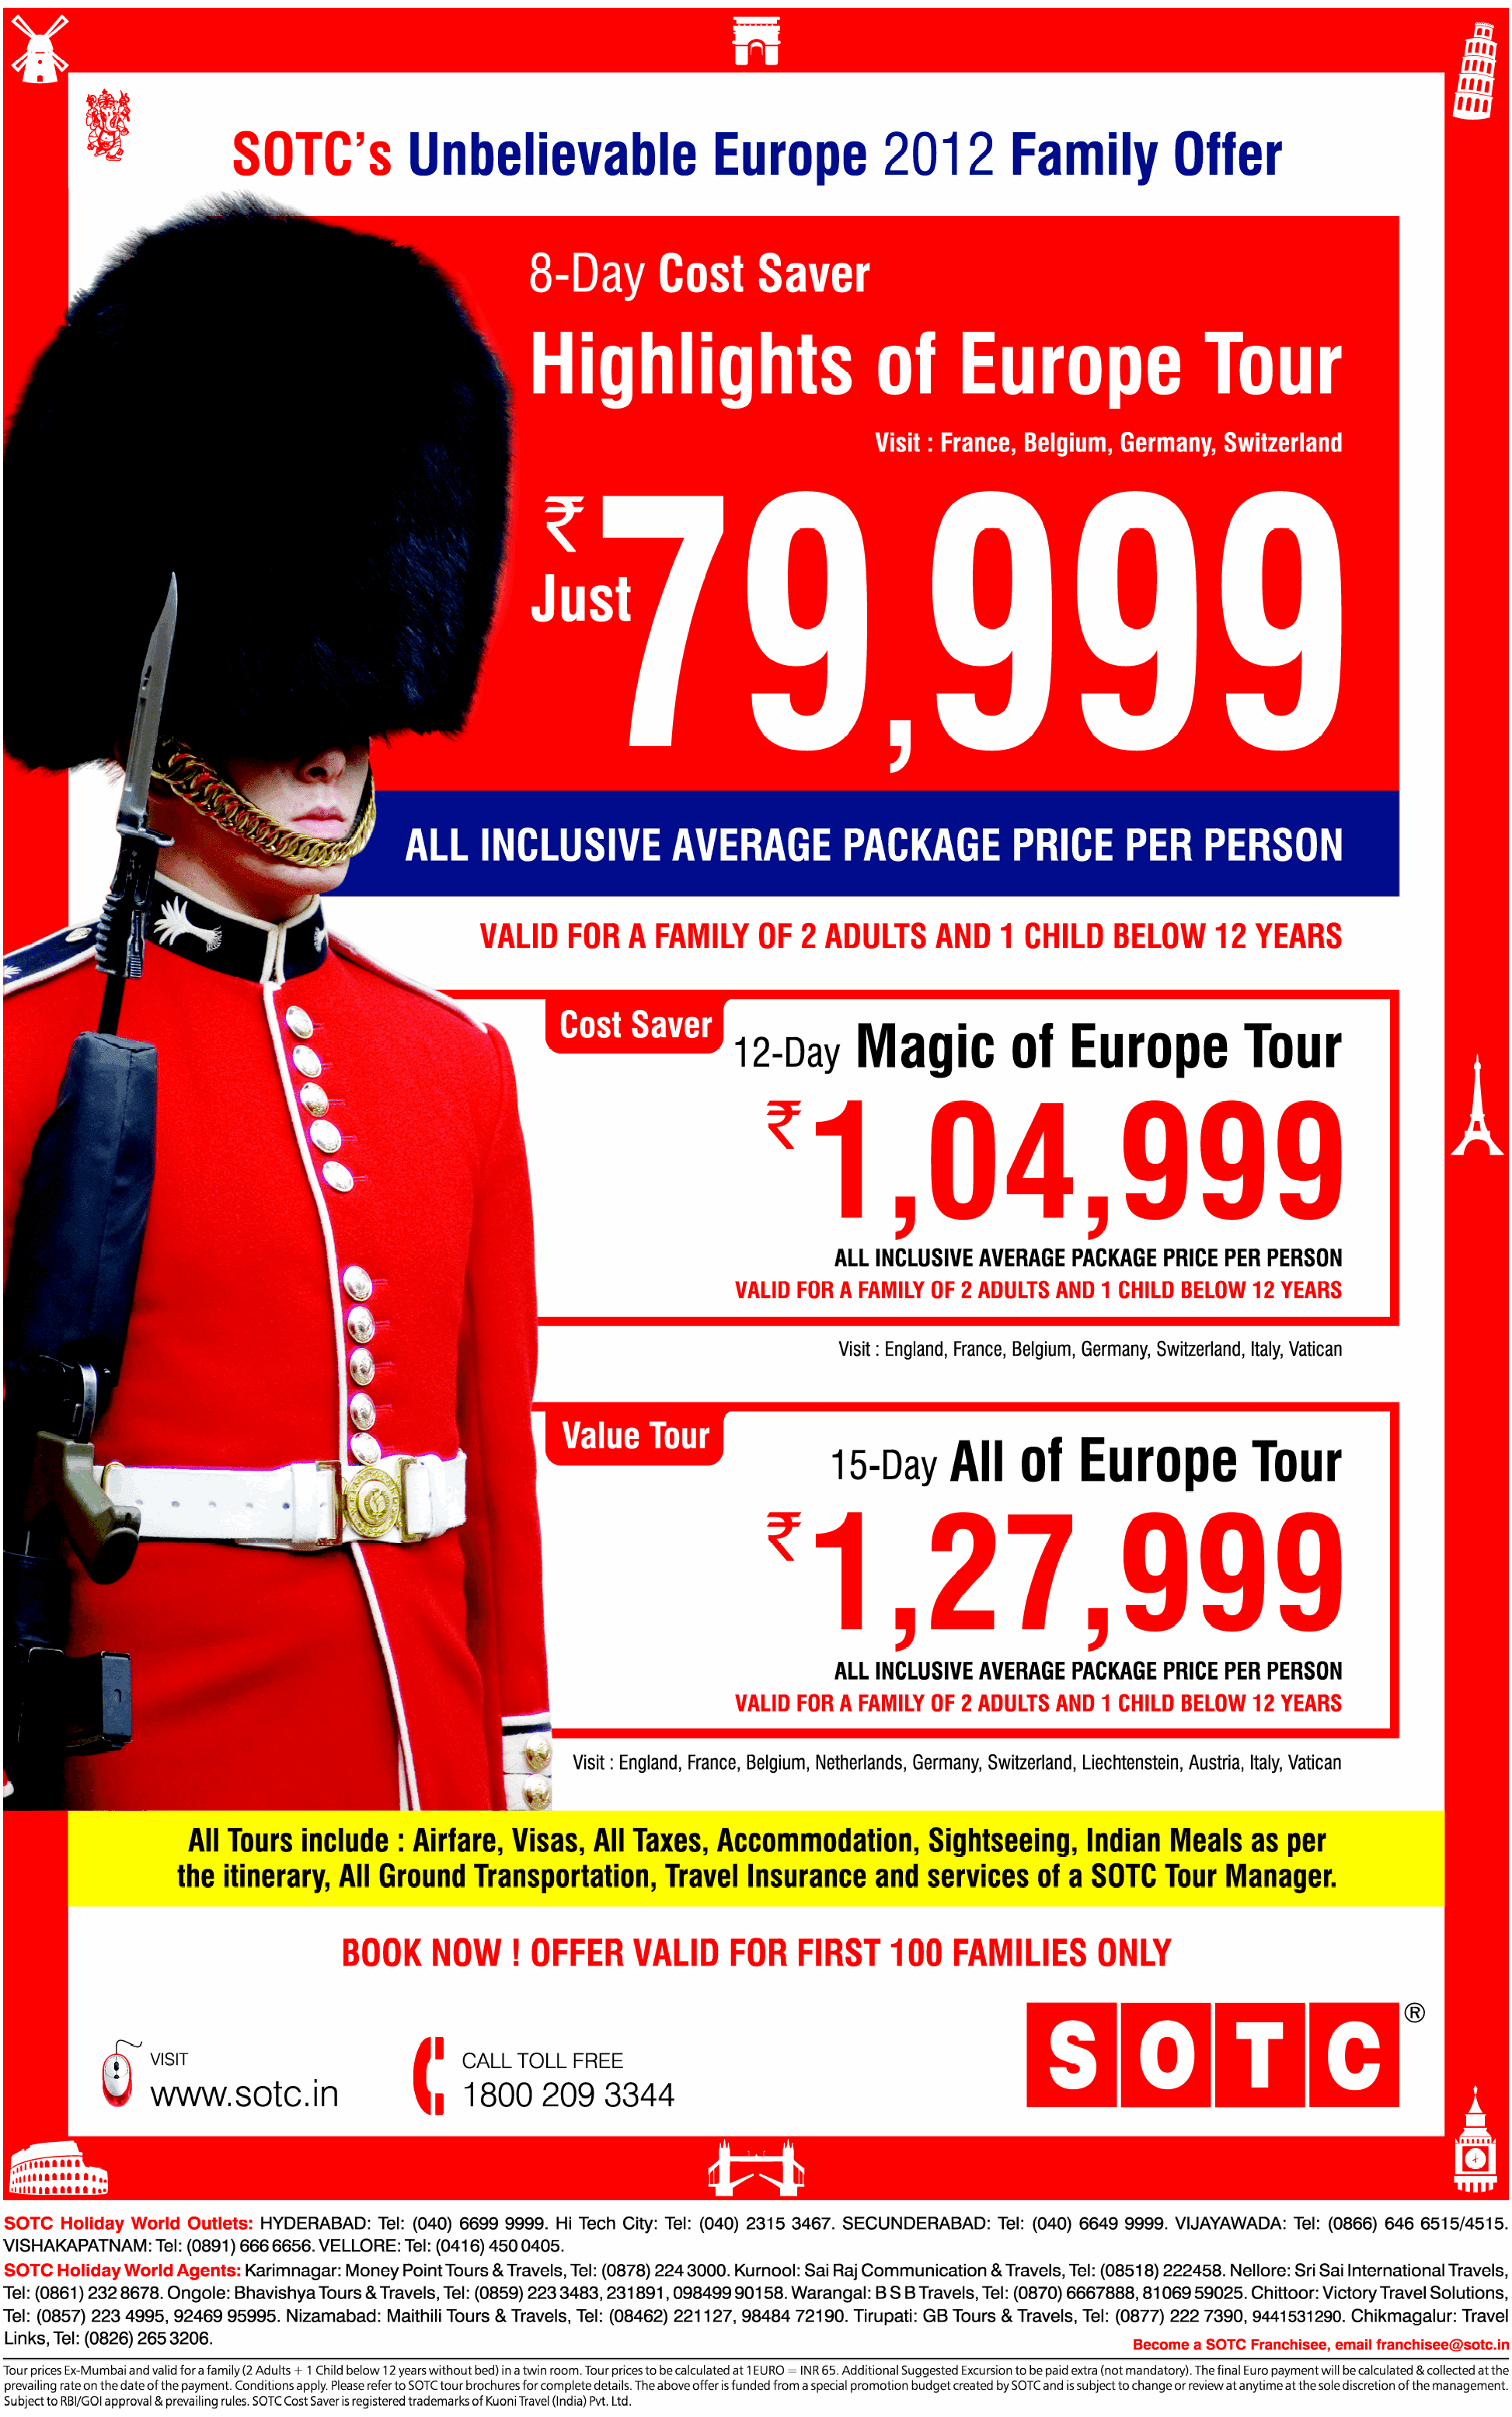 SOTC presents Unbelievable Europe 2012 Family Offer  DealsHut